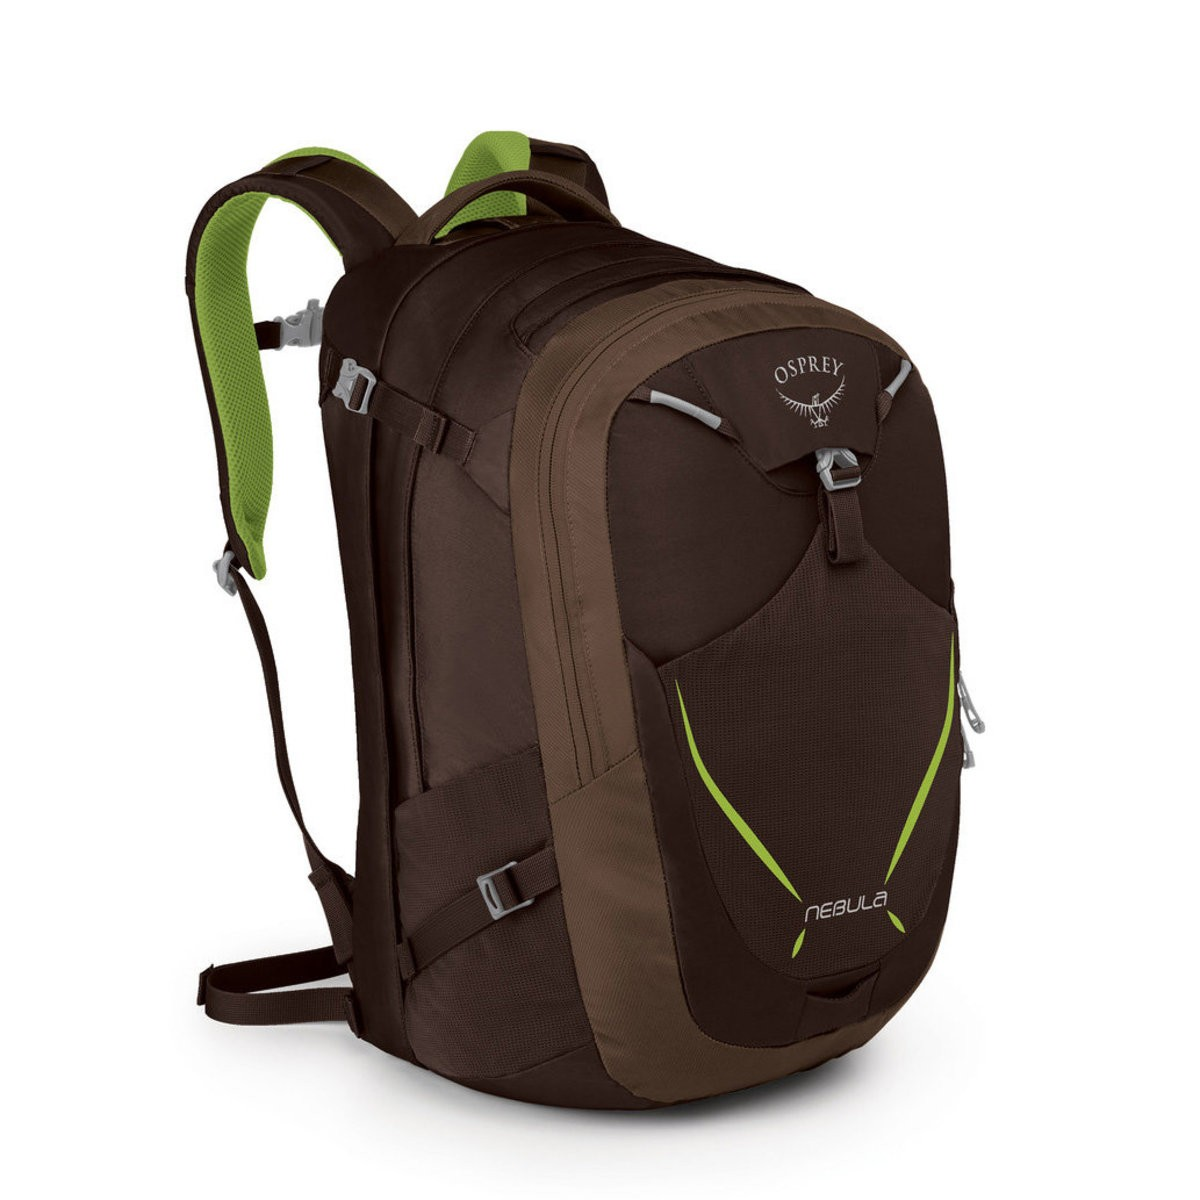 Osprey NEBULA BACKPACK – 34 L  KOMODO GREEN